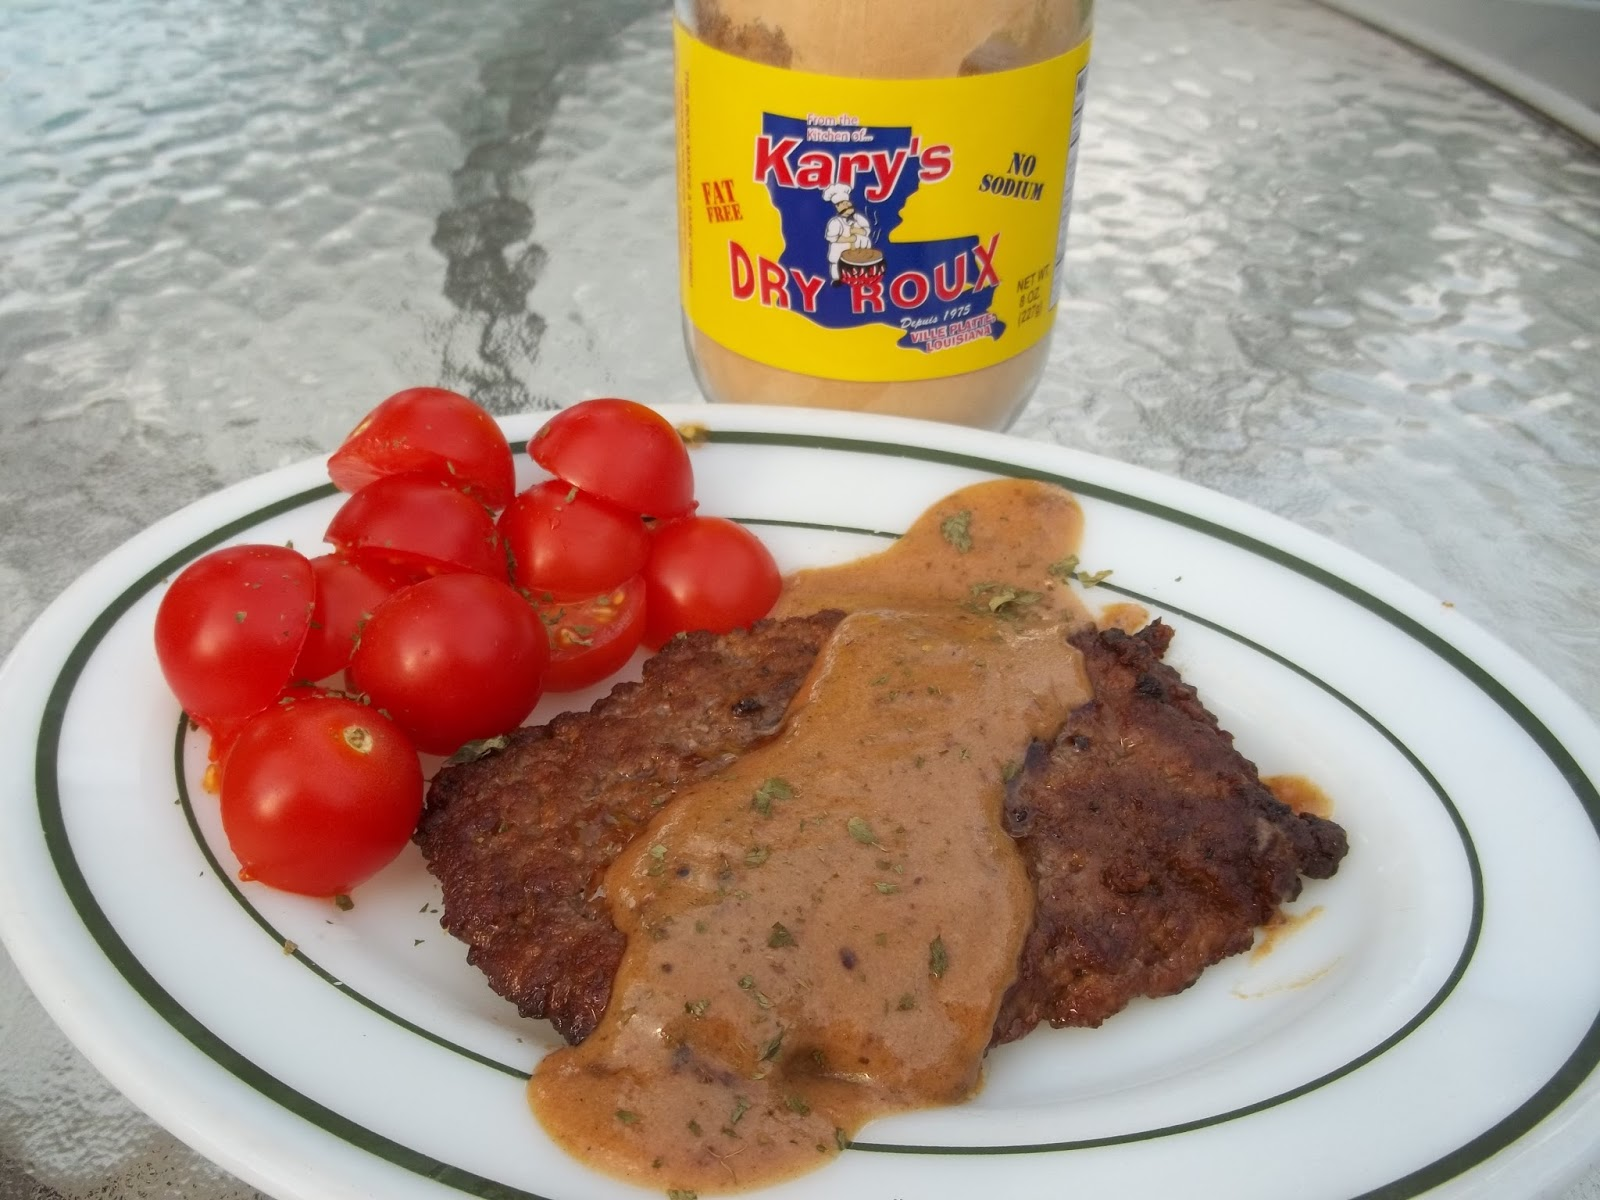 37 Cooks: Country Fried Steak with Kary's Dry Roux Milk Gravy